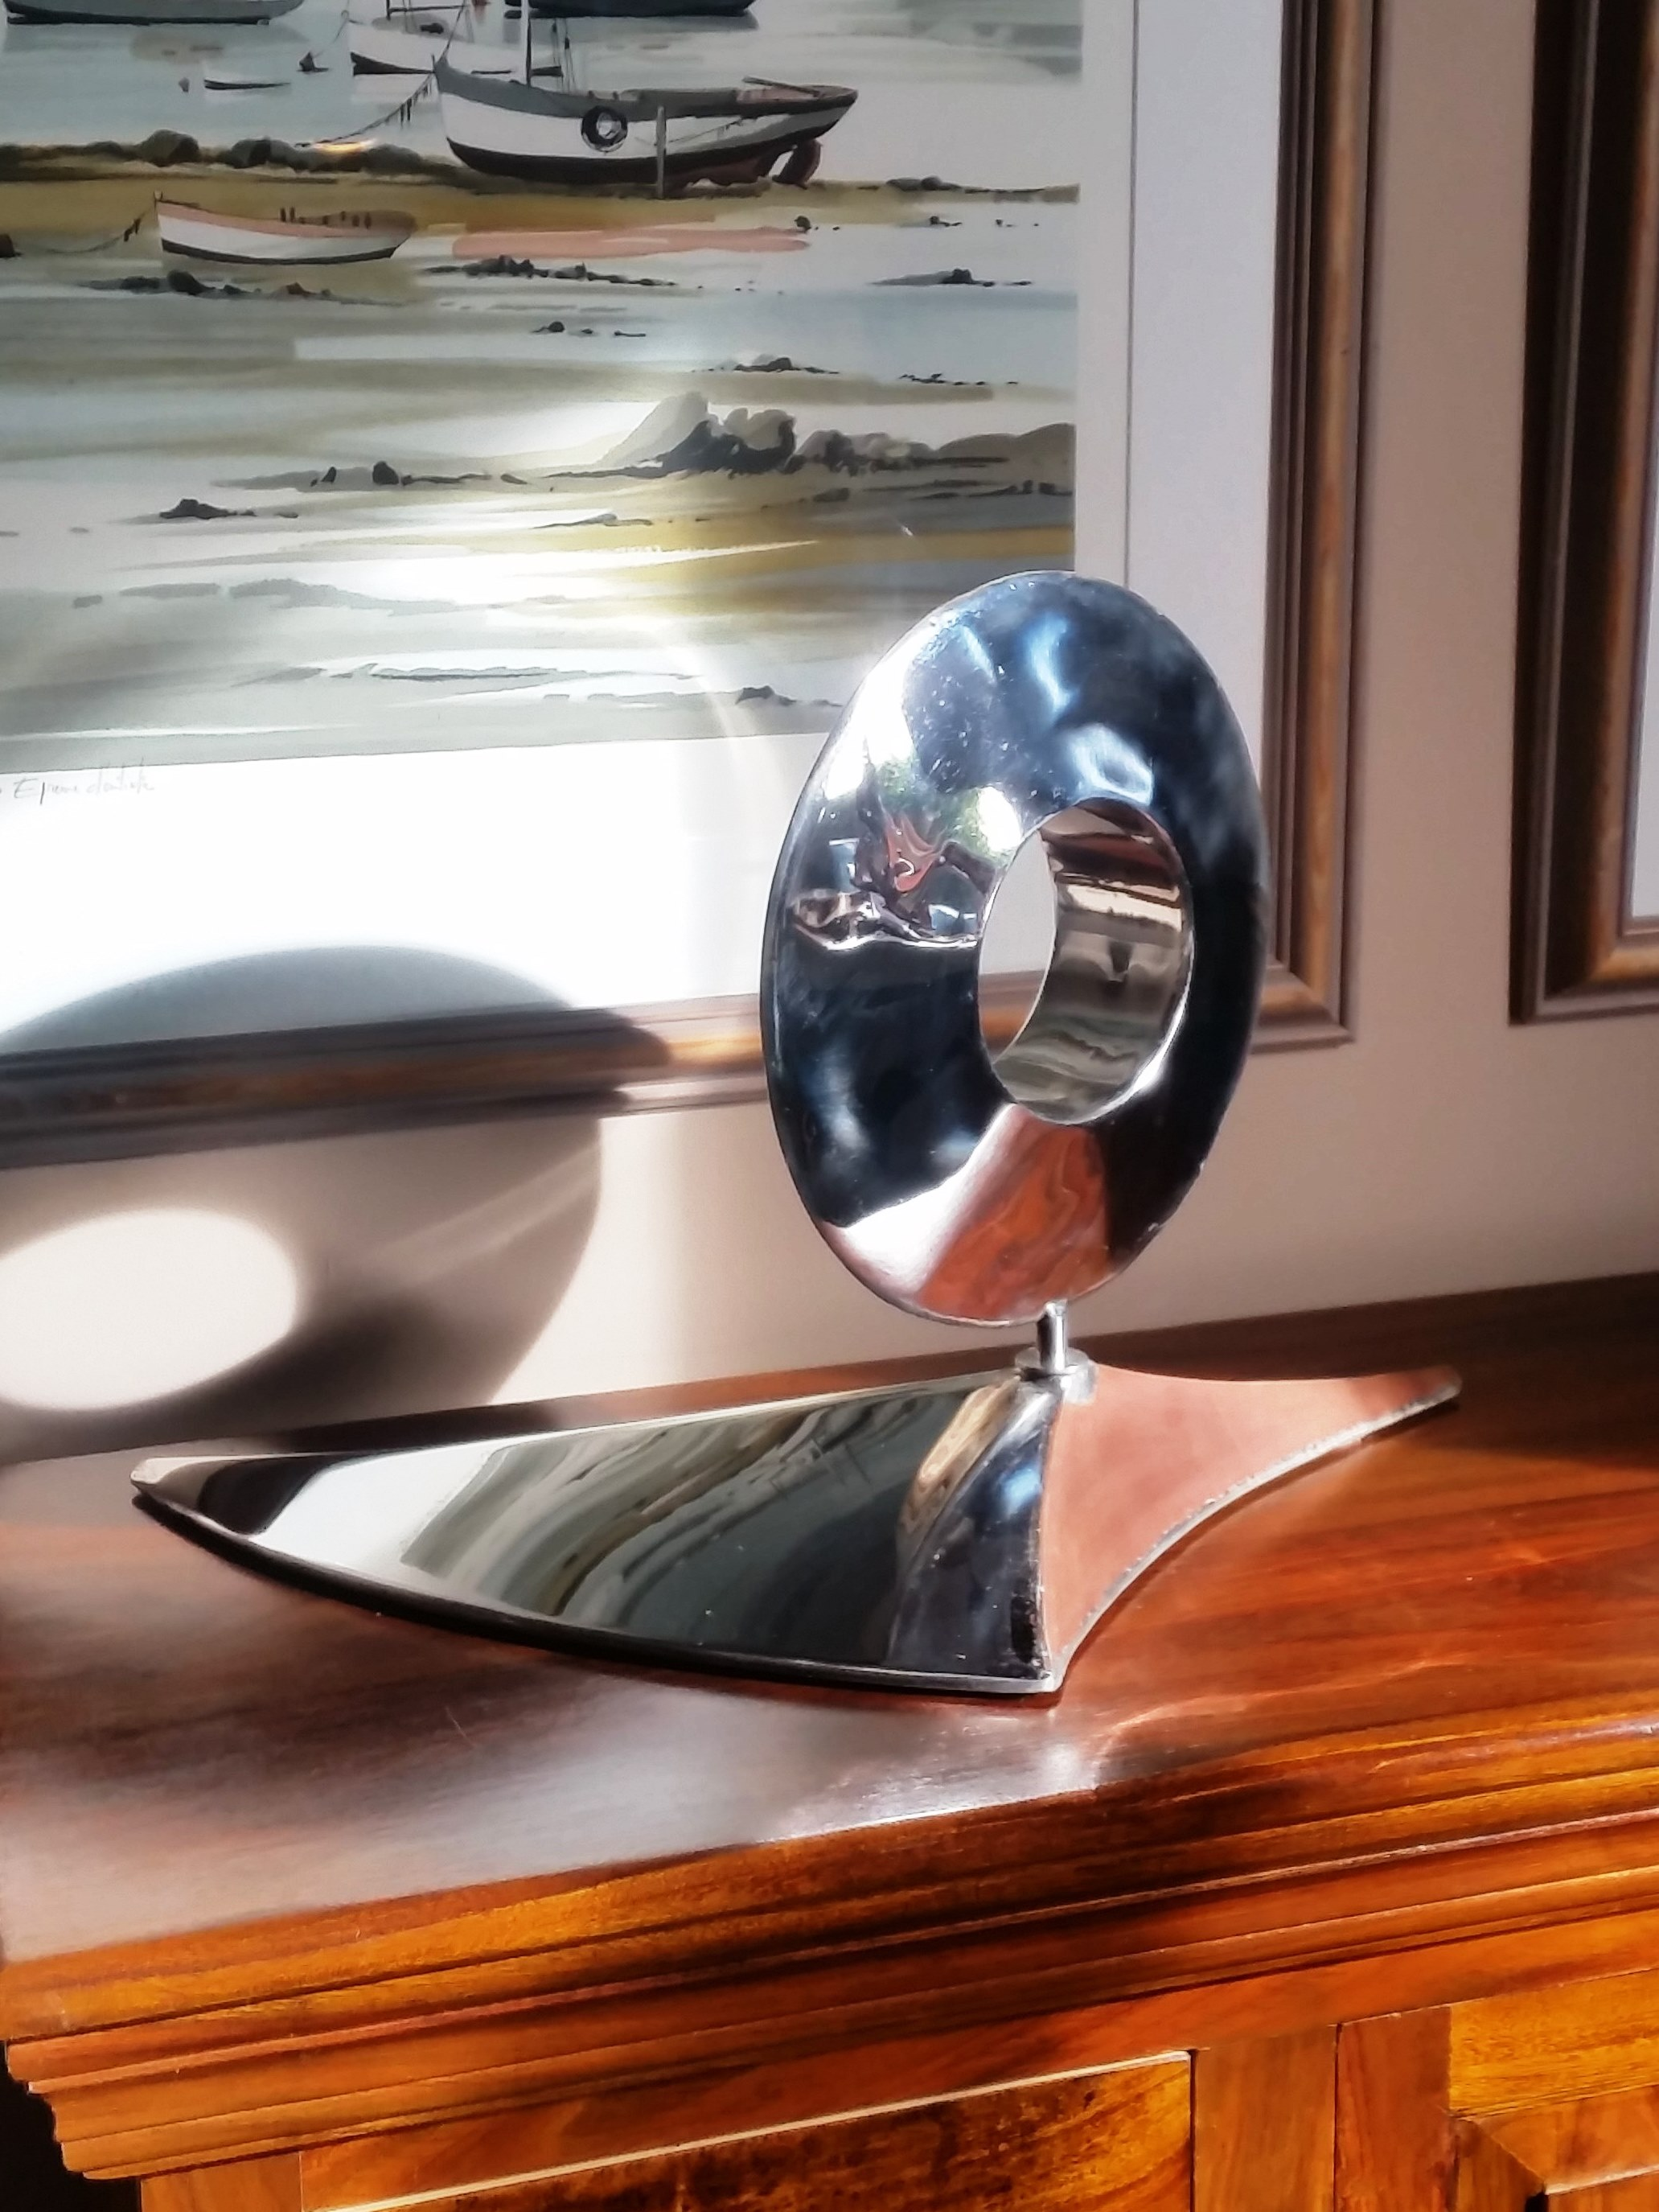 Luna Night - showing Stainless Steel Side & Brushed Copper Cresent